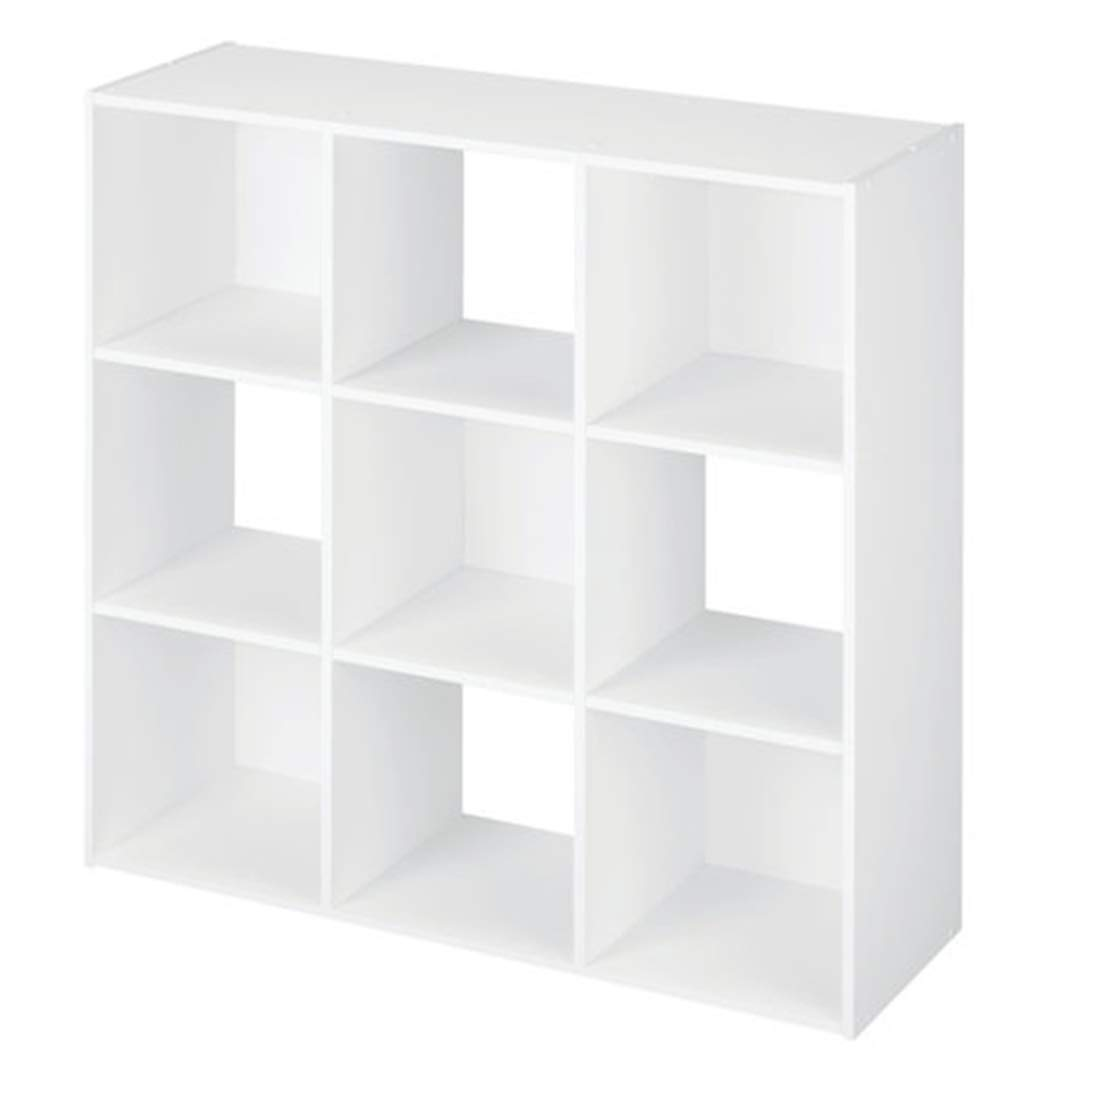 MS Home 9 Cube Multipurpose Organizer for Figurine and Toys - Clothing Storage Stackable - Laminated and Easy to Assemble 36'' W x 36'' H x 12'' D (White)